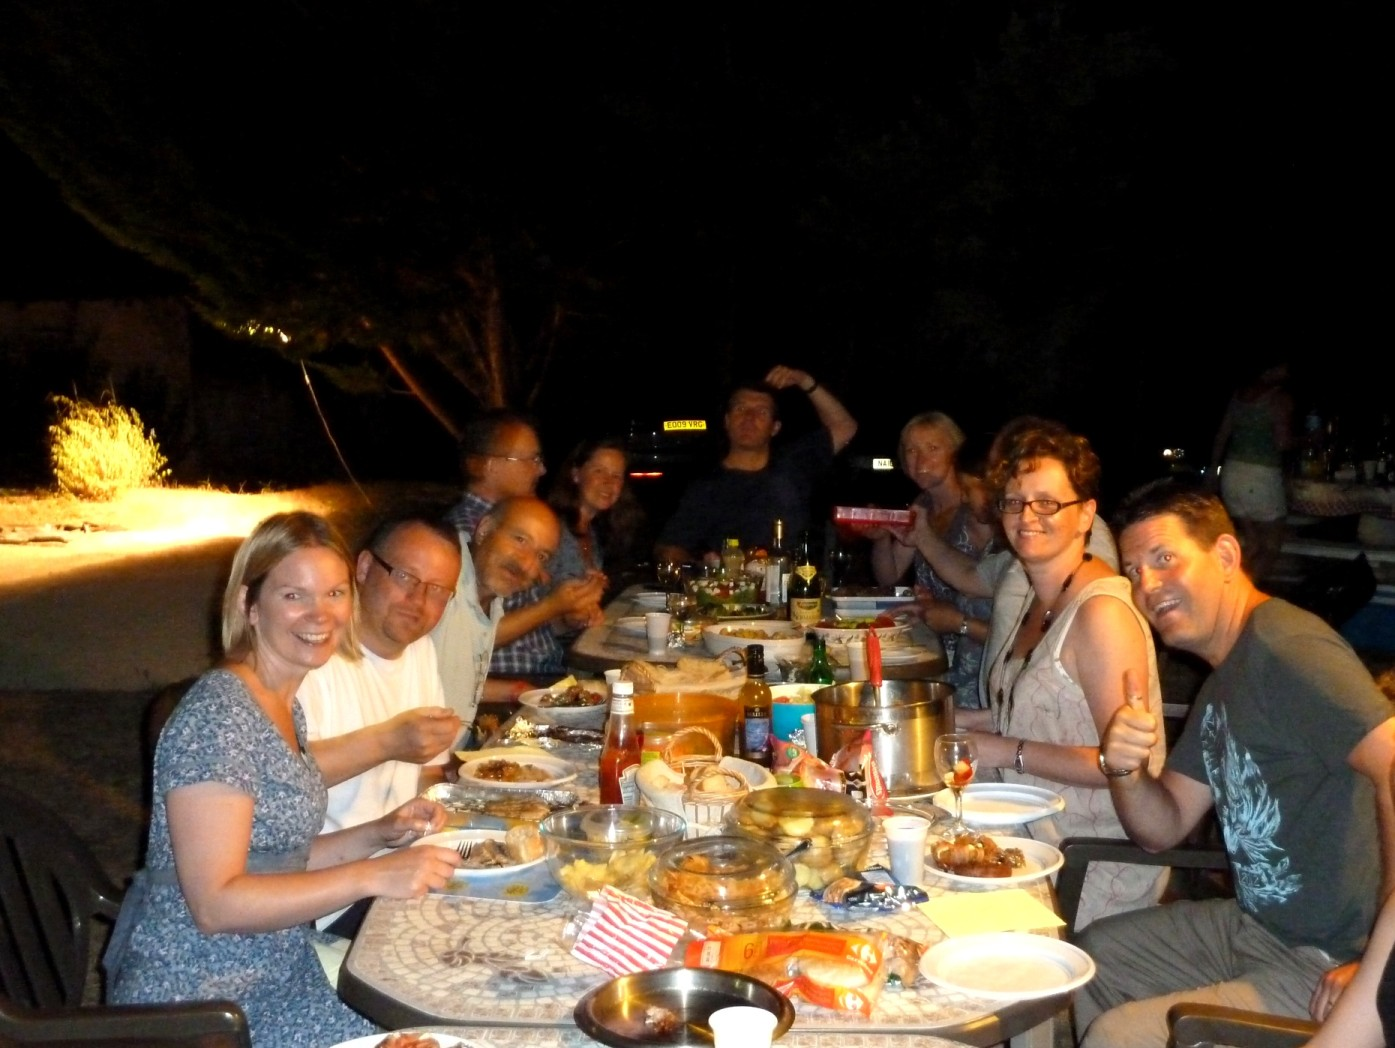 BBQ at our dordogne holiday cottages